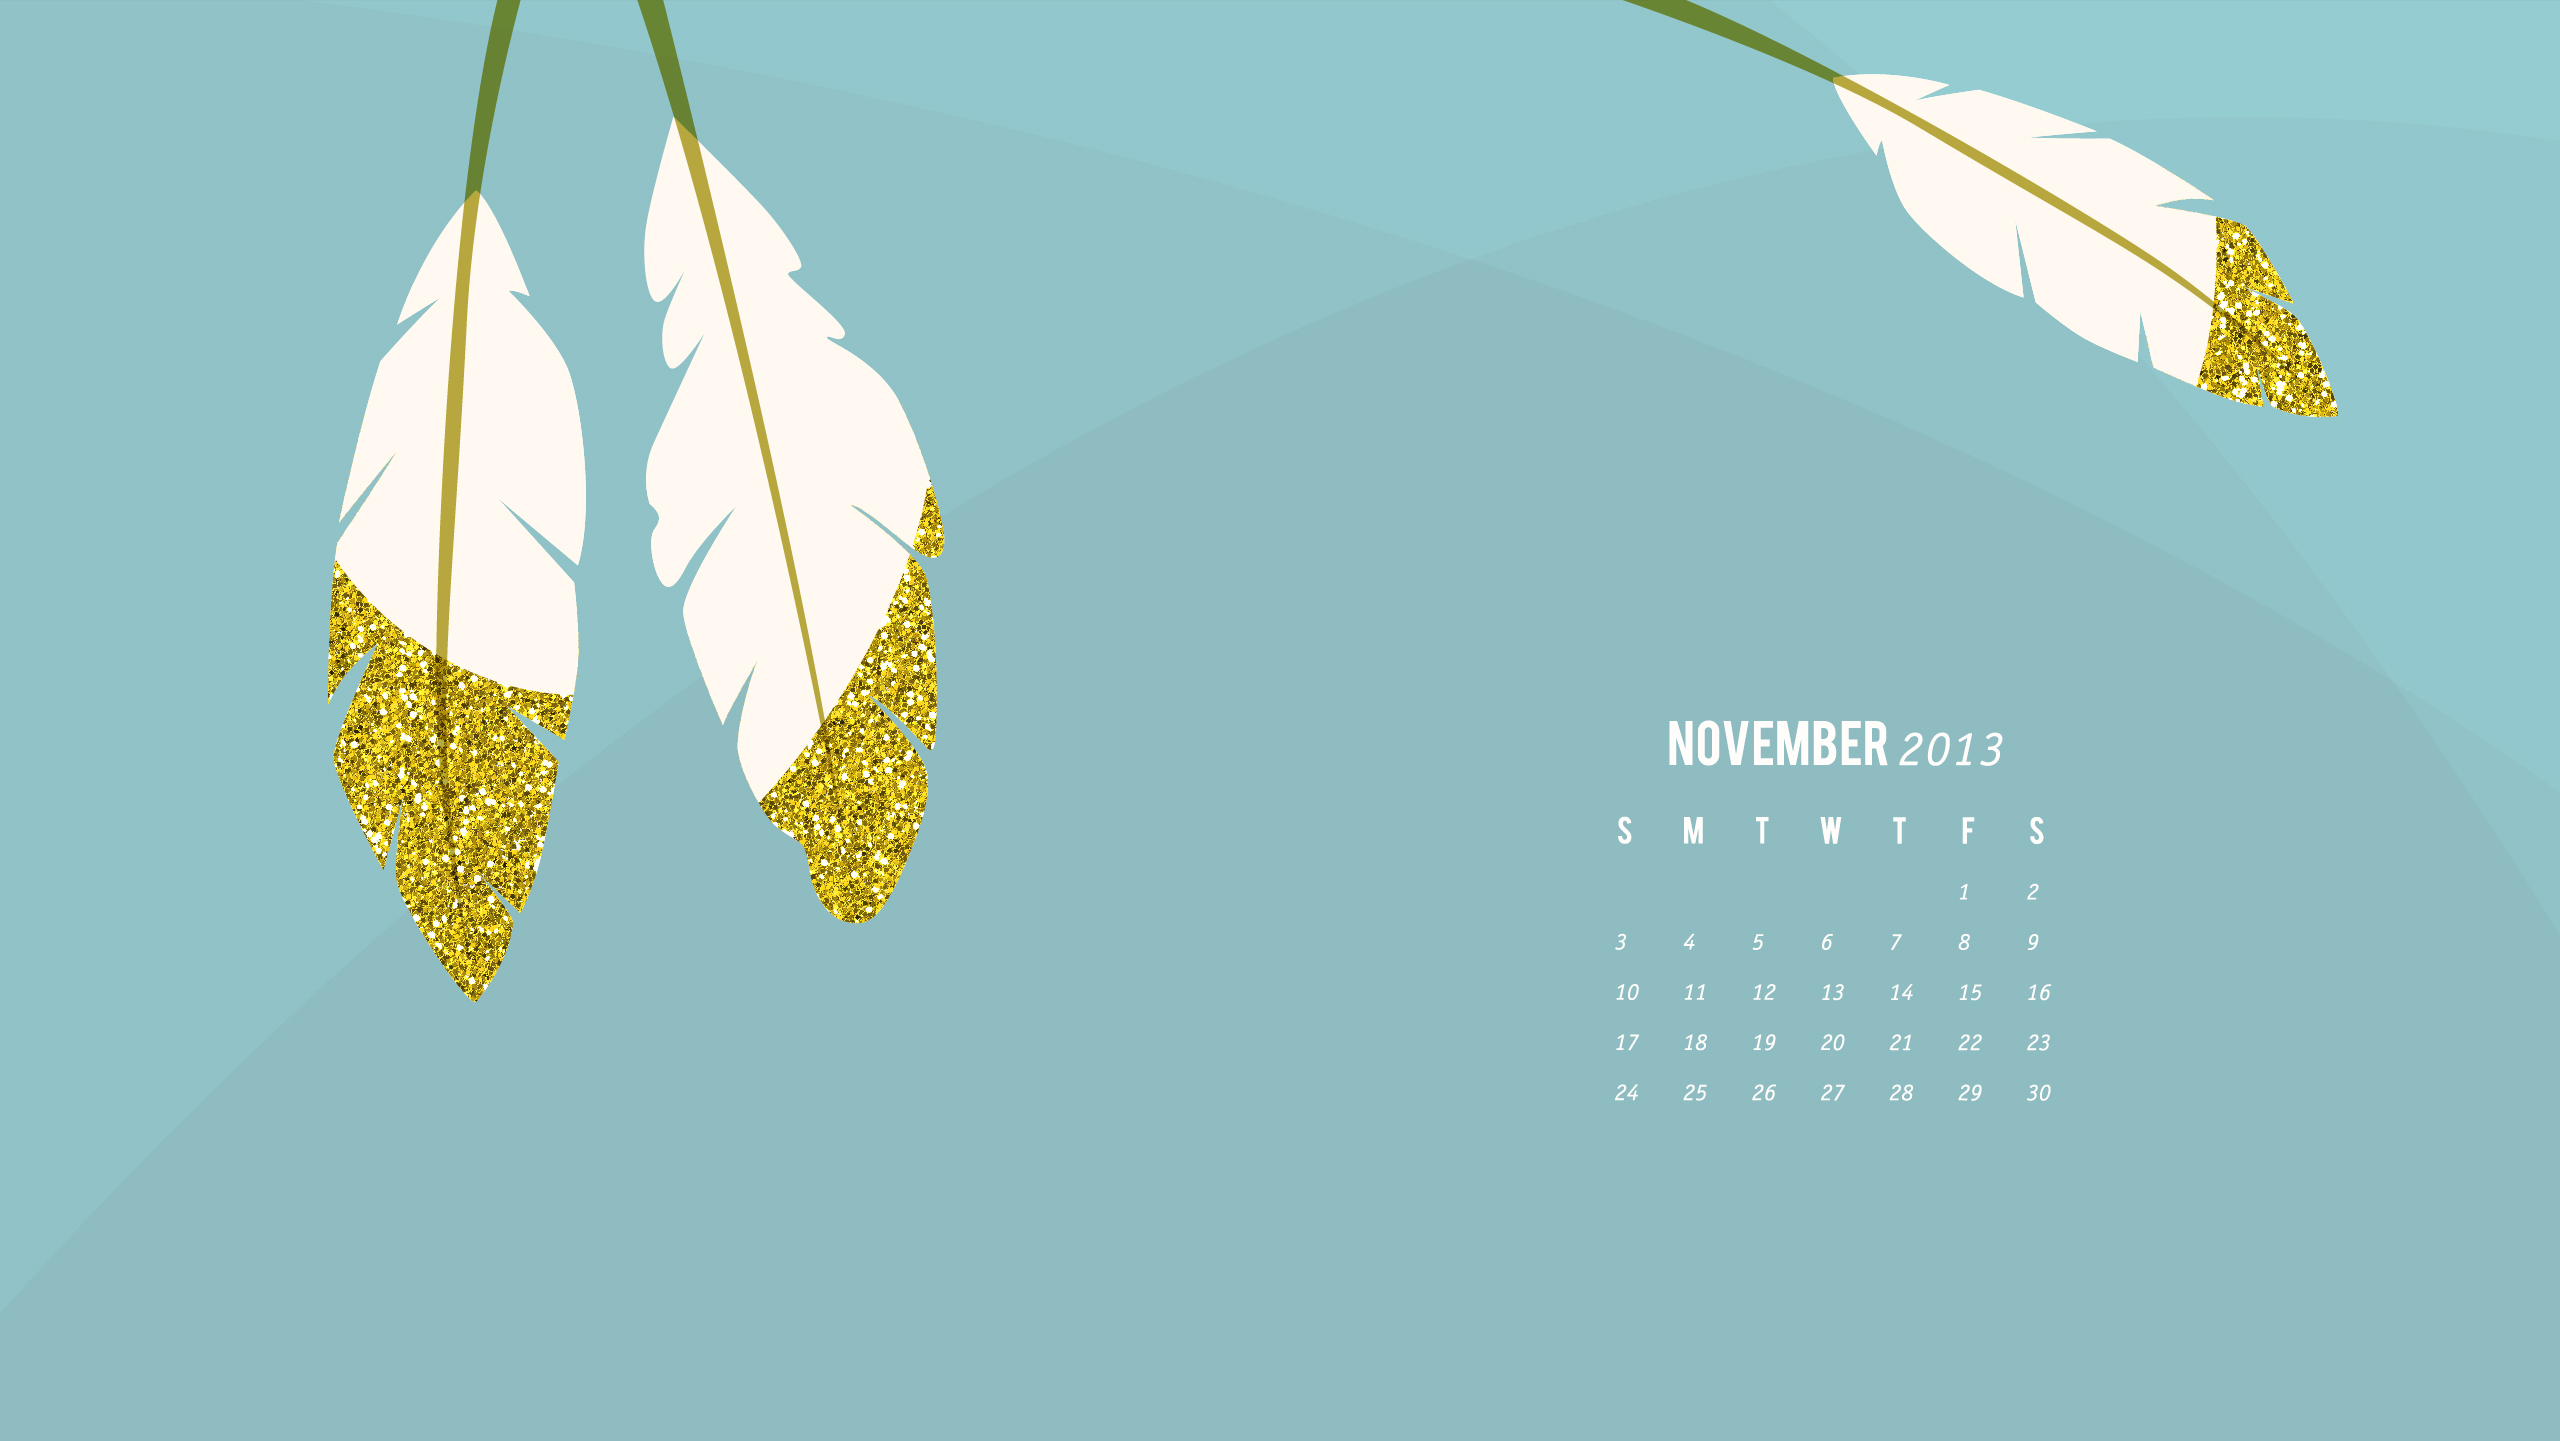 November 2013 Calendar Wallpaper - Sarah Hearts